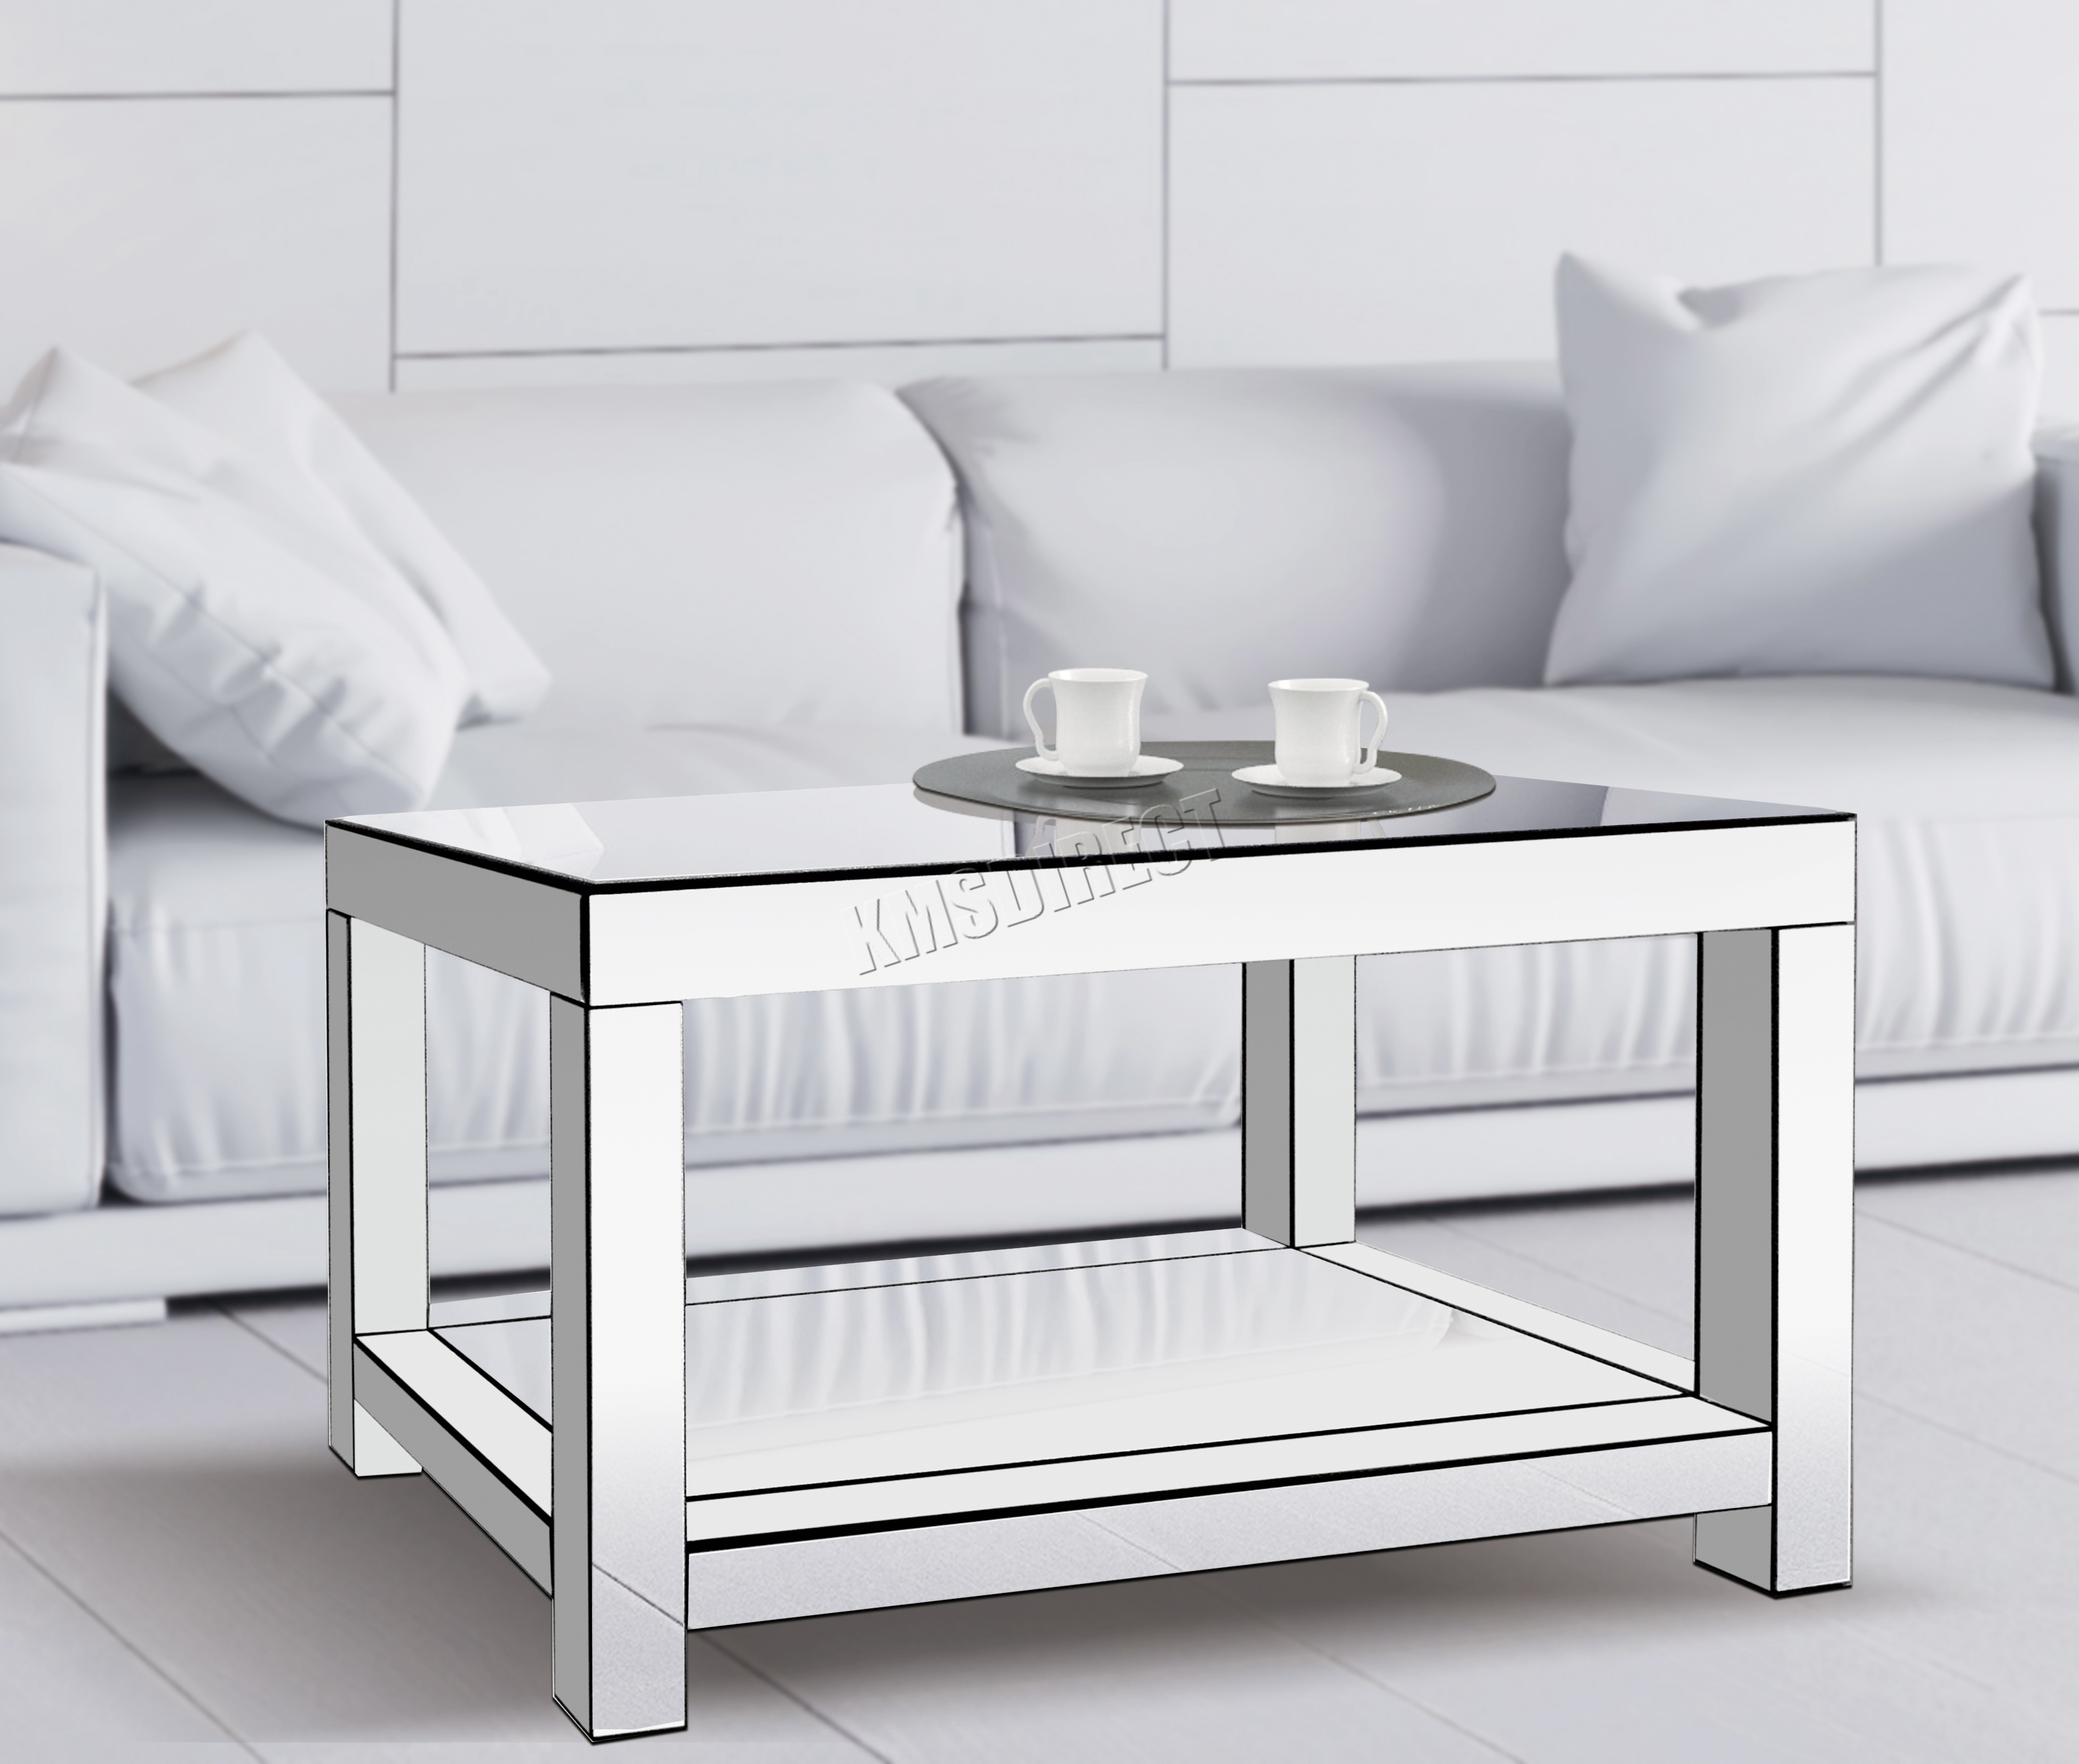 FoxHunter Mirrored Furniture Glass Coffee Table 2 Tier